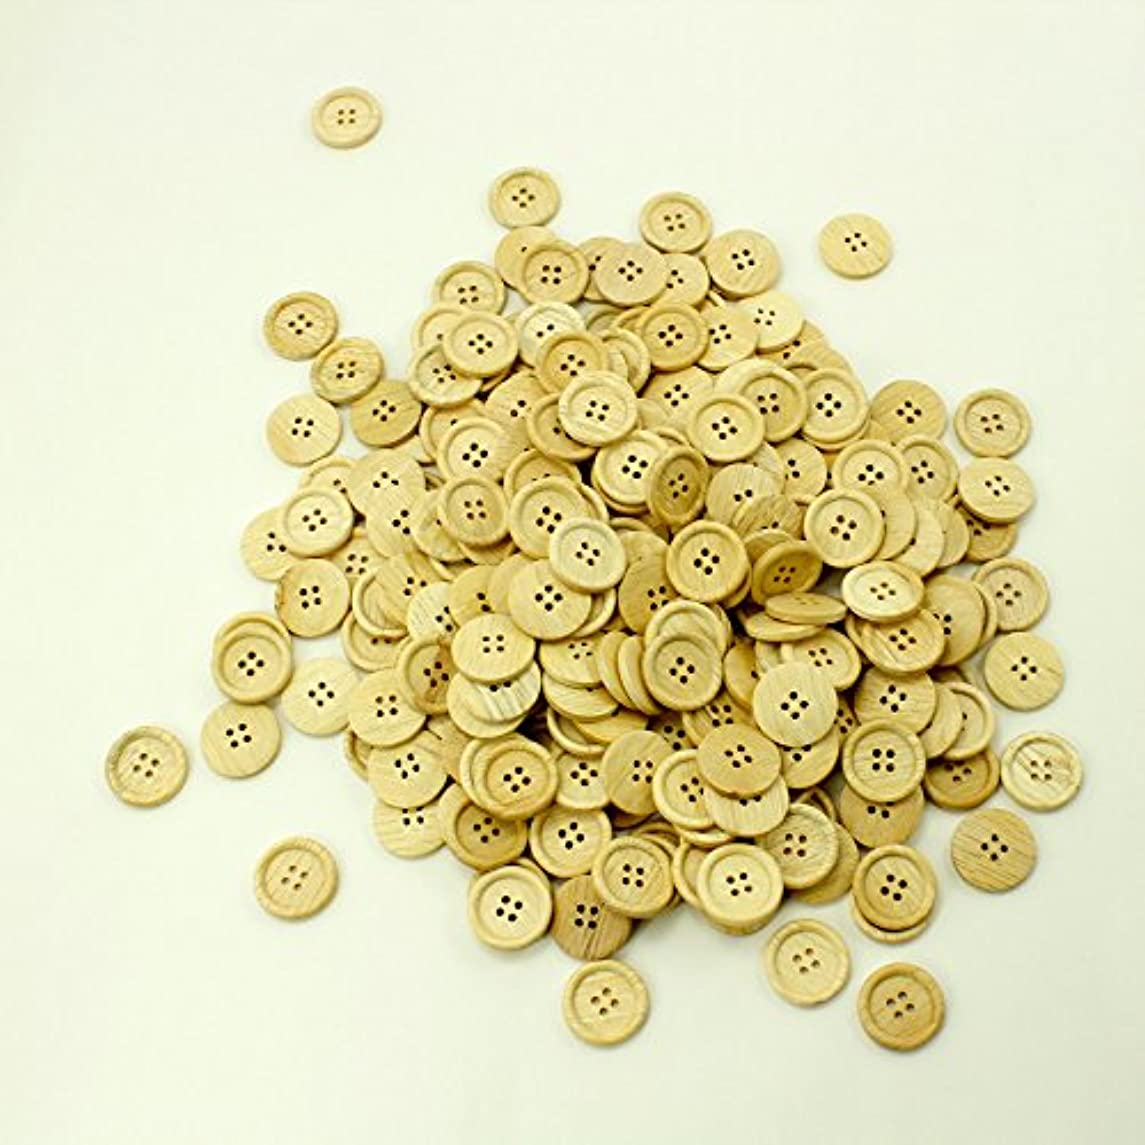 PEPPERLONELY Brand 50PC Natural Color 4 Holes Scrapbooking Sewing Wood Buttons 23mm (7/8 Inch)